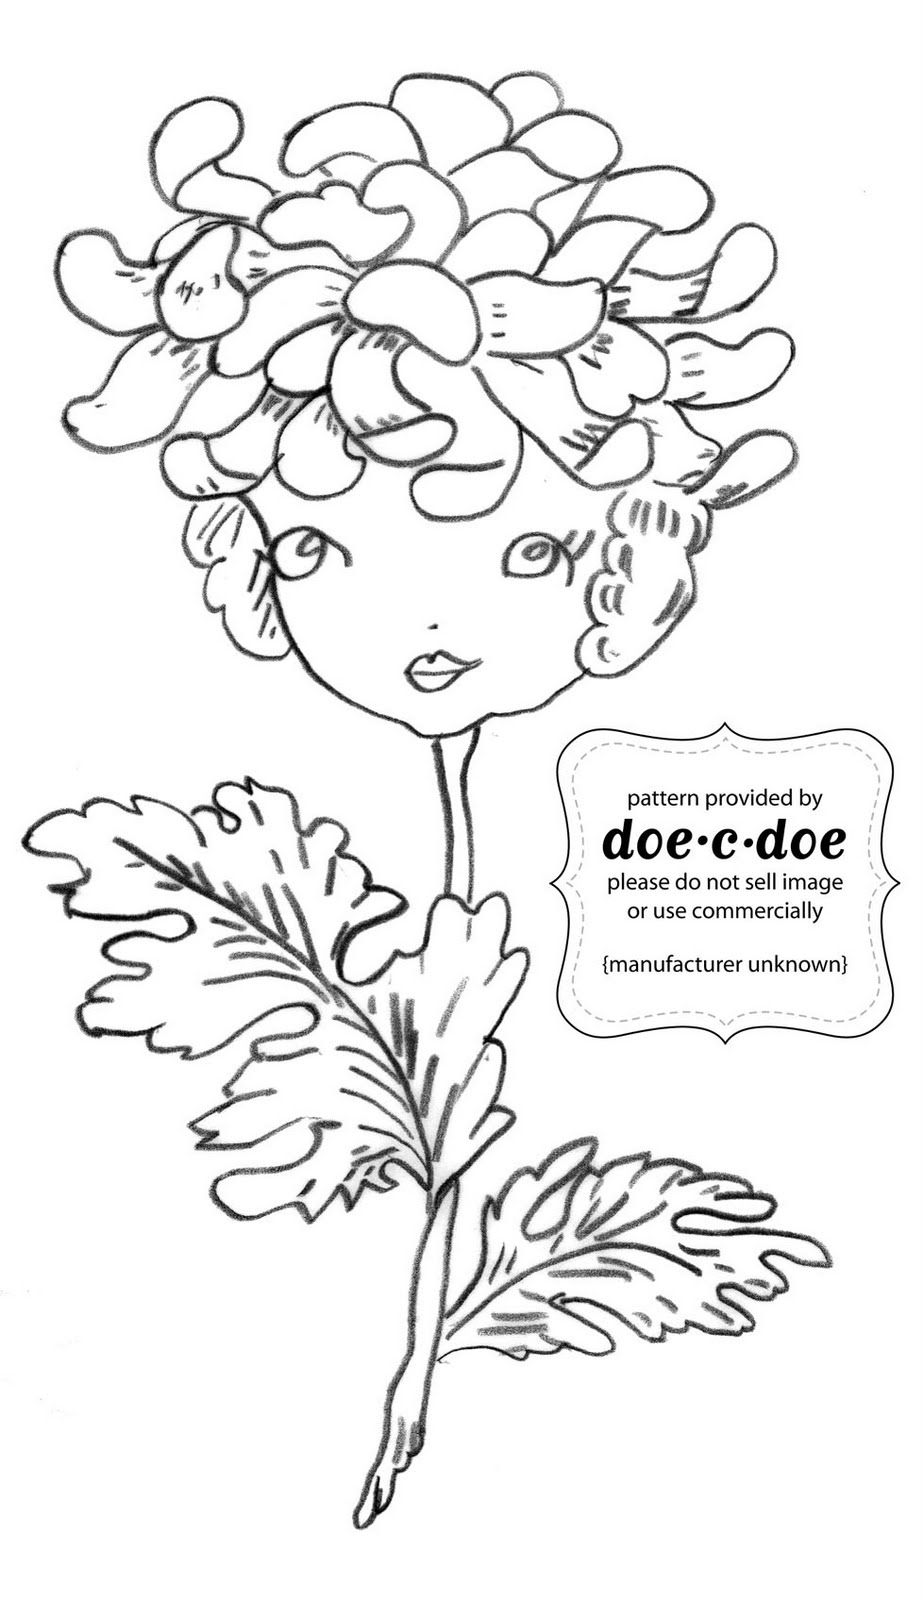 lady flower vintage embroidery pattern from doe c doe patterns i